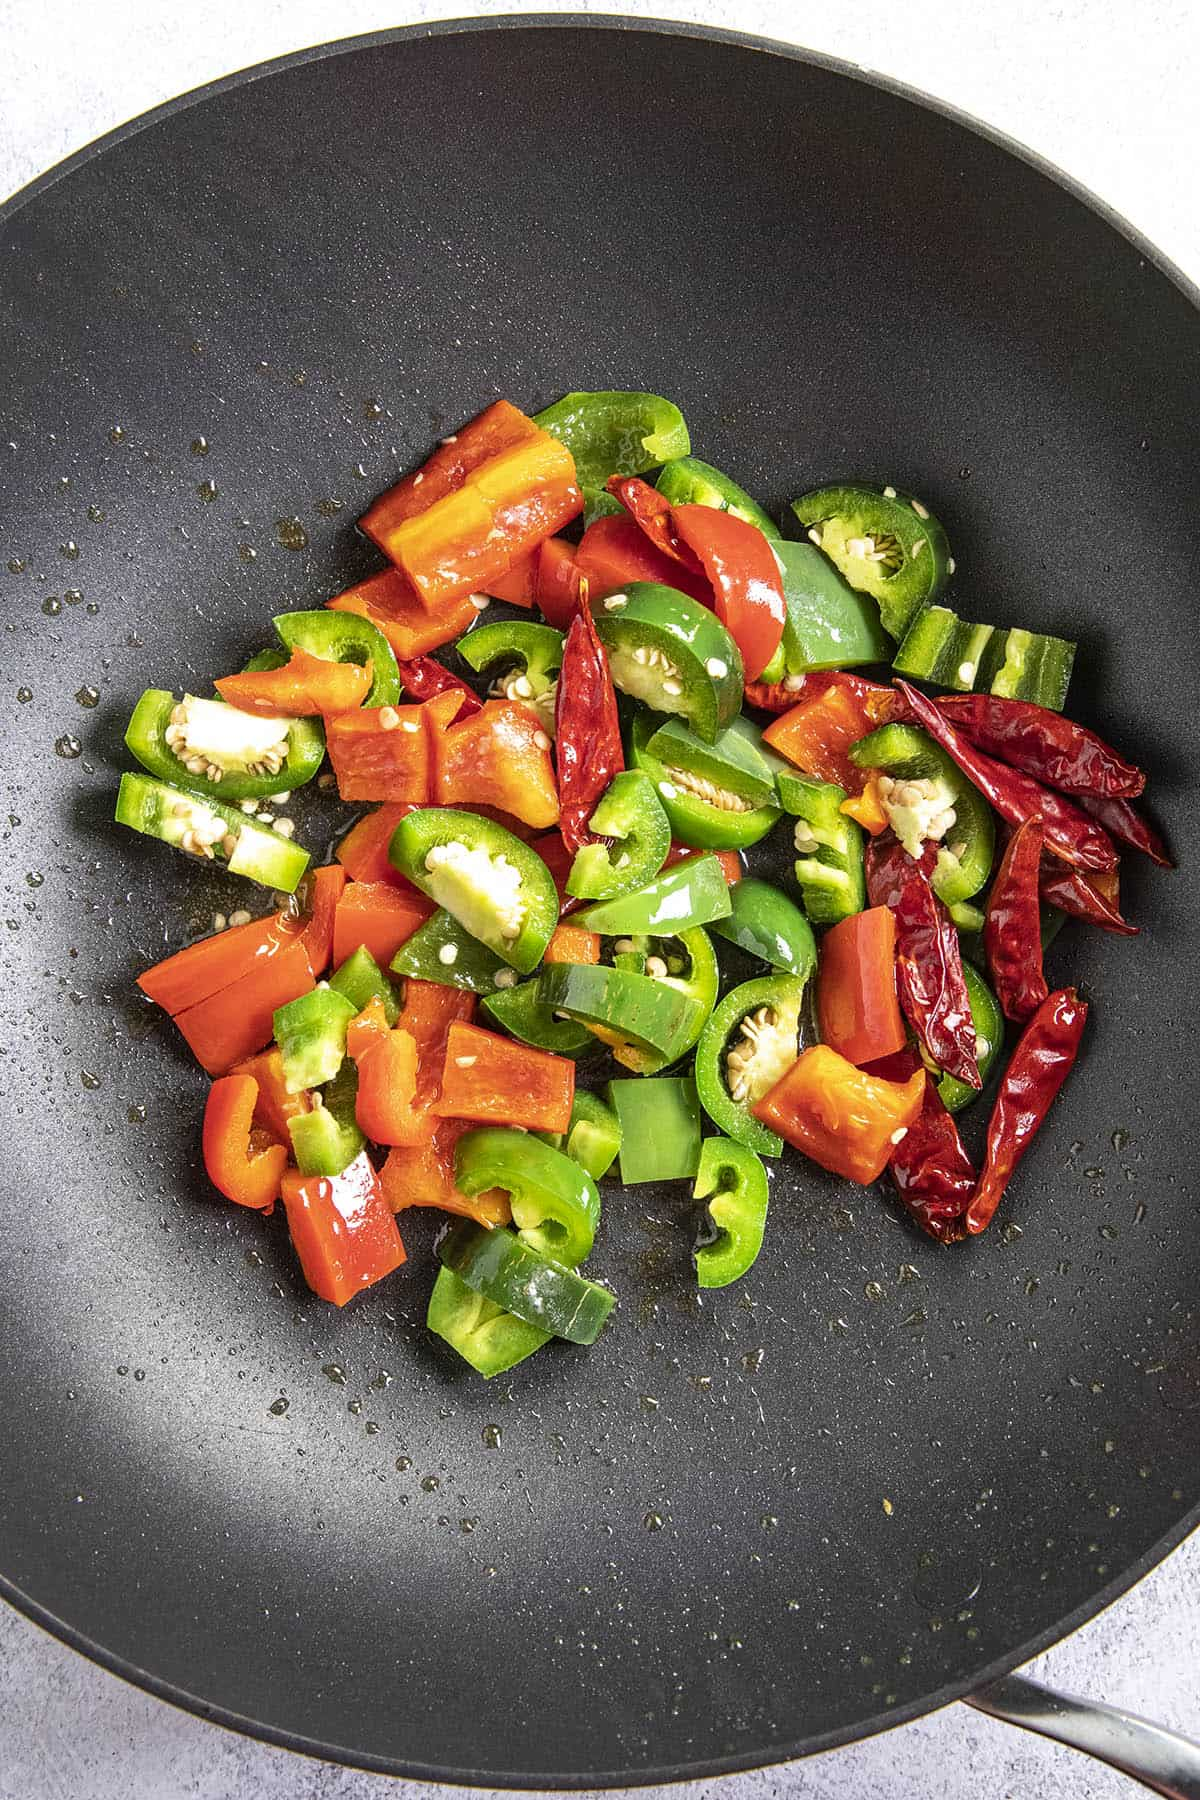 Vegetables in a hot pan